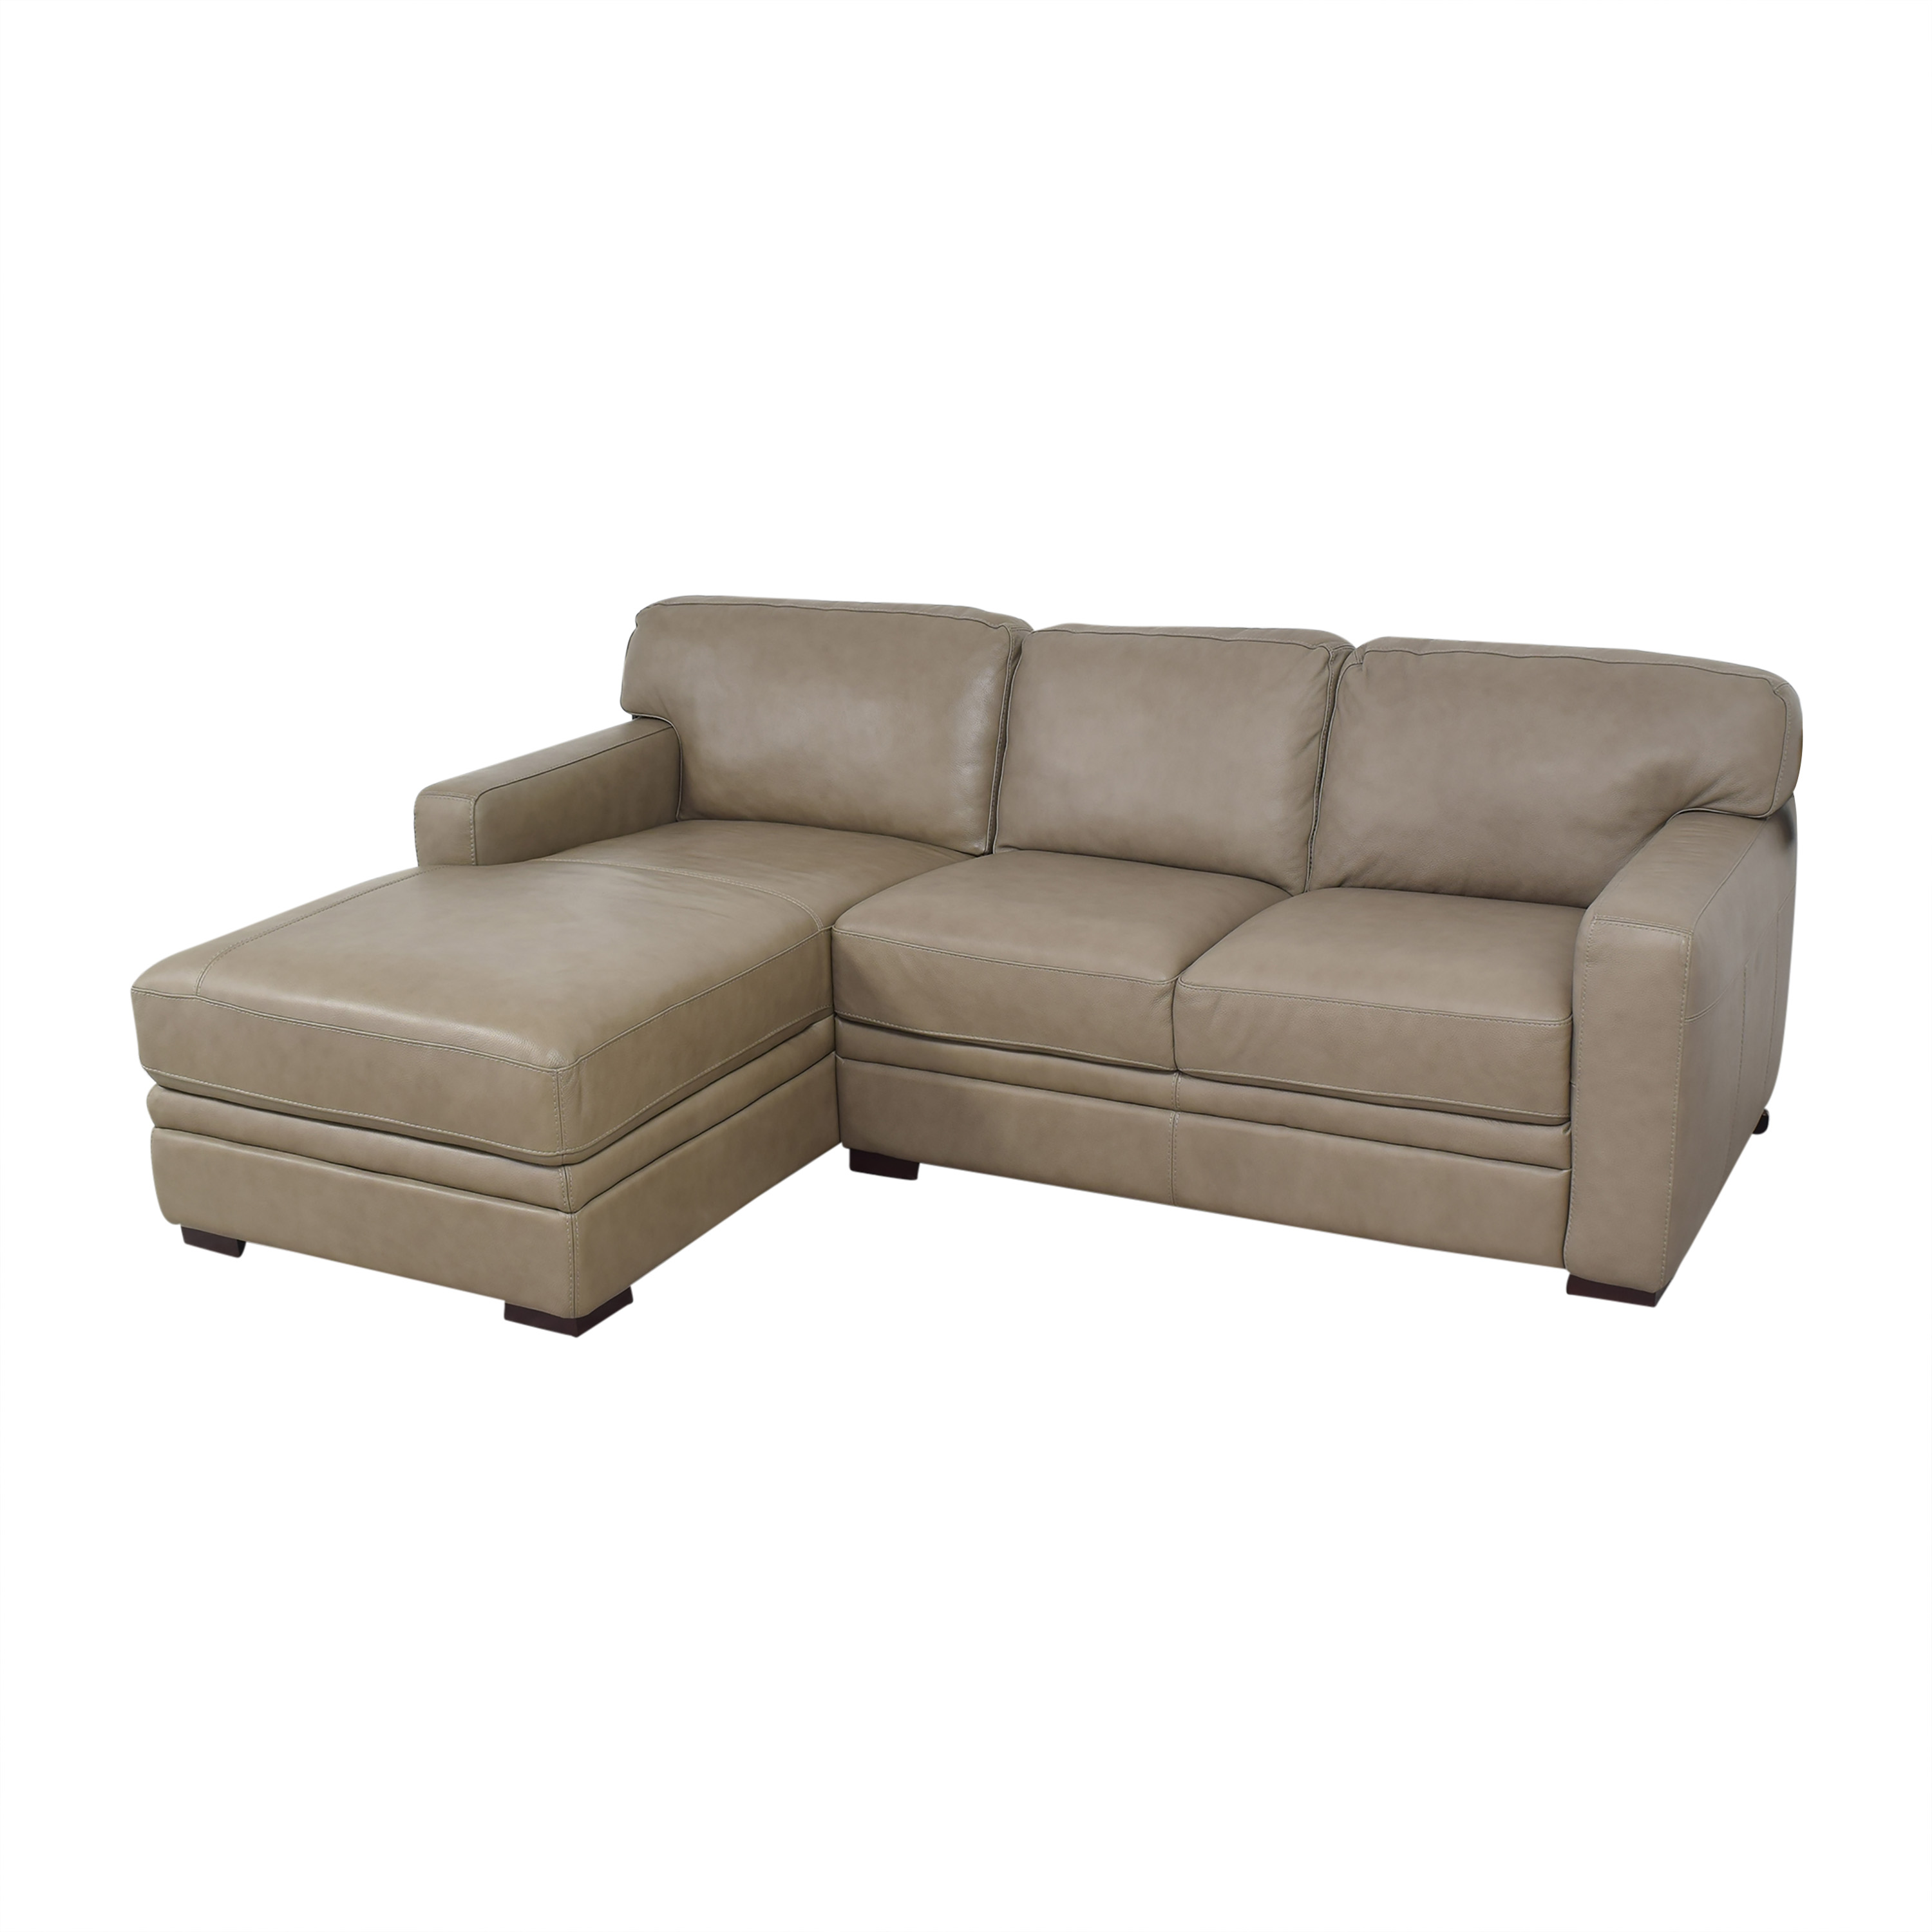 Macy's Macy's Avenell Two Piece Chaise Sectional Sofa Sectionals